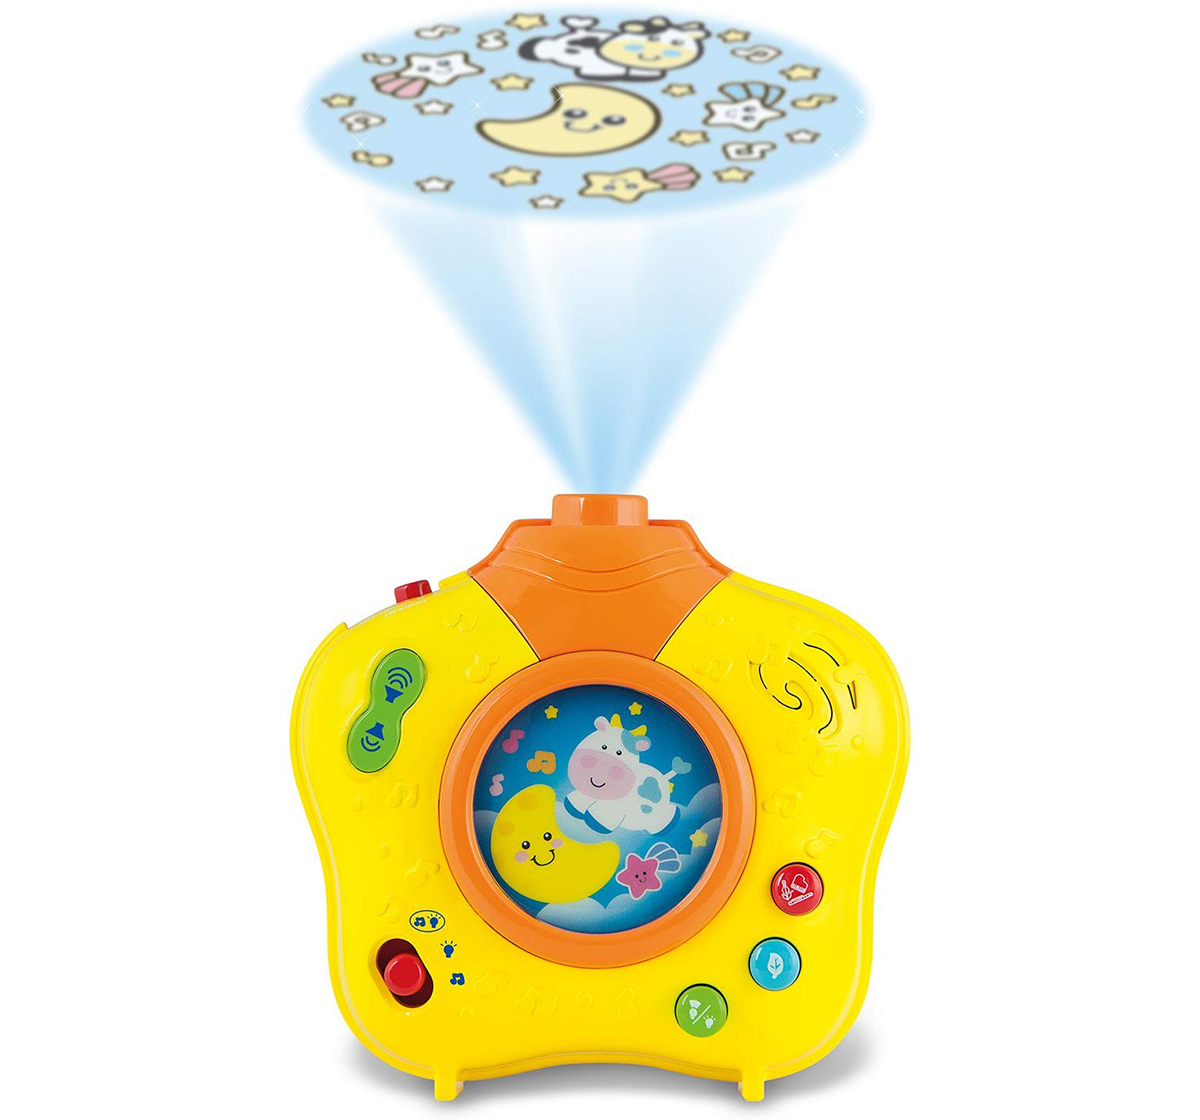 WinFun | Winfun Baby Dreamland Sooth Projector New Born for Kids age 0M+